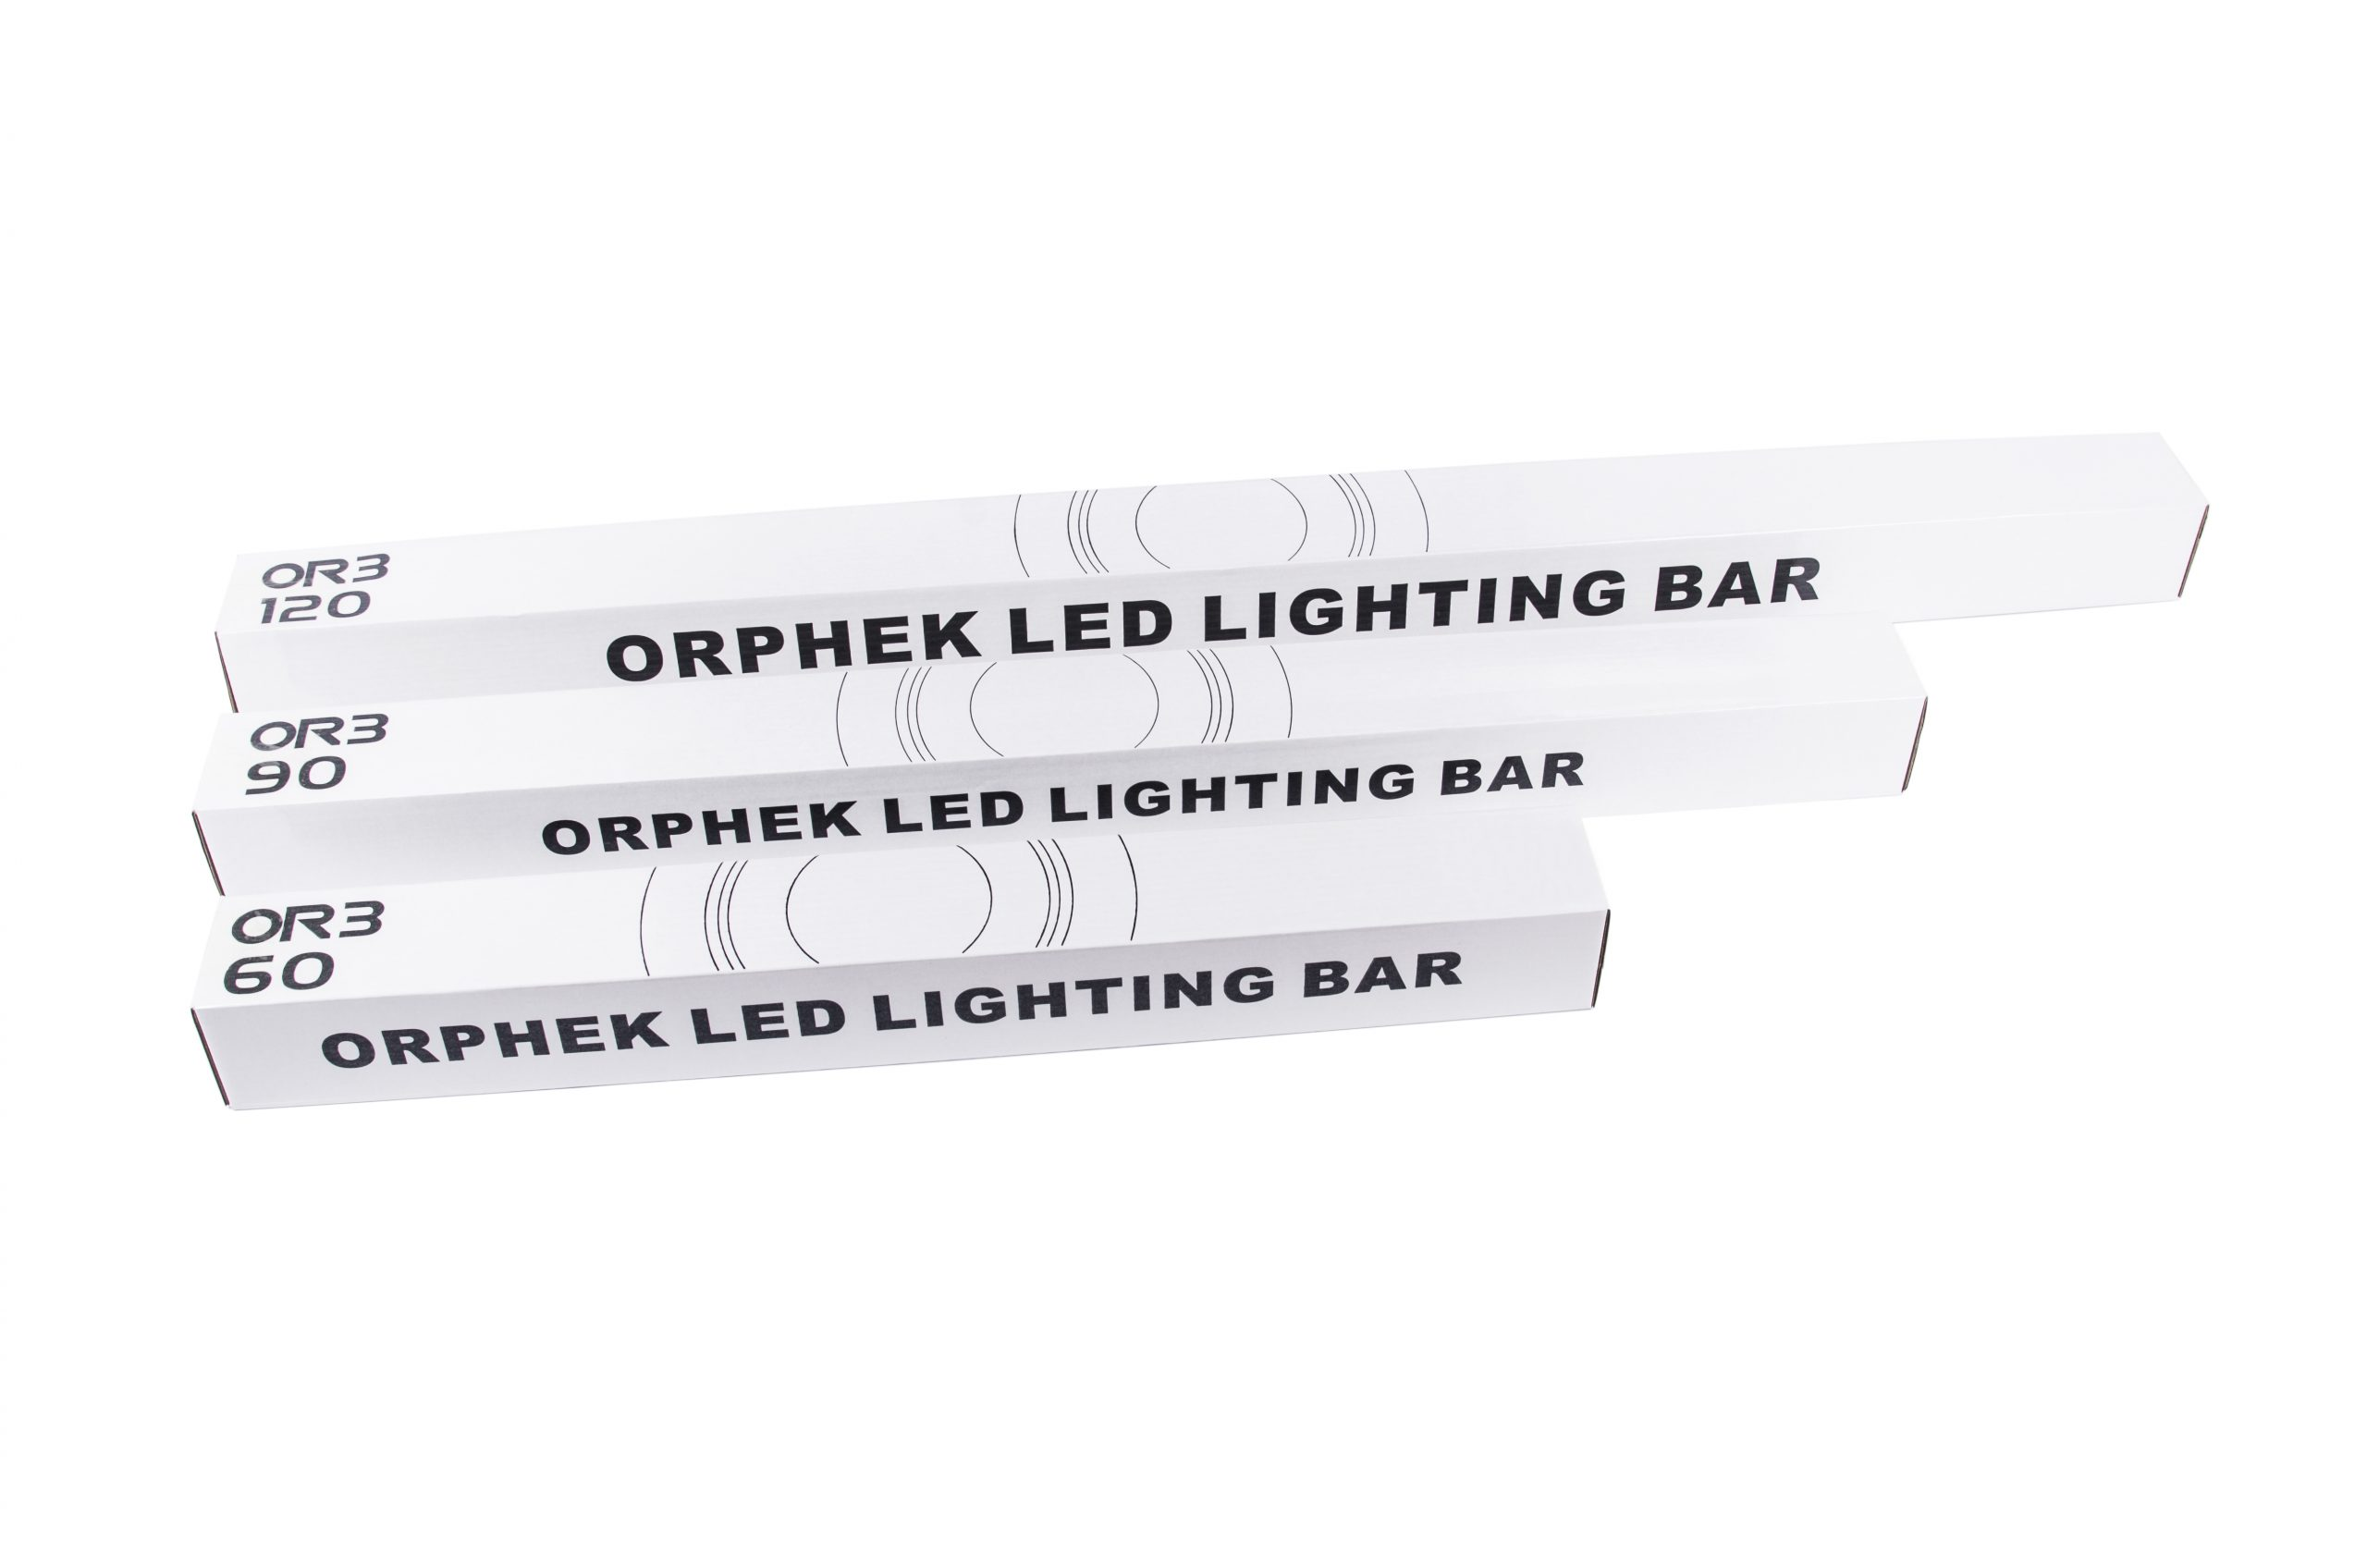 orphek_or3_led_bar_package